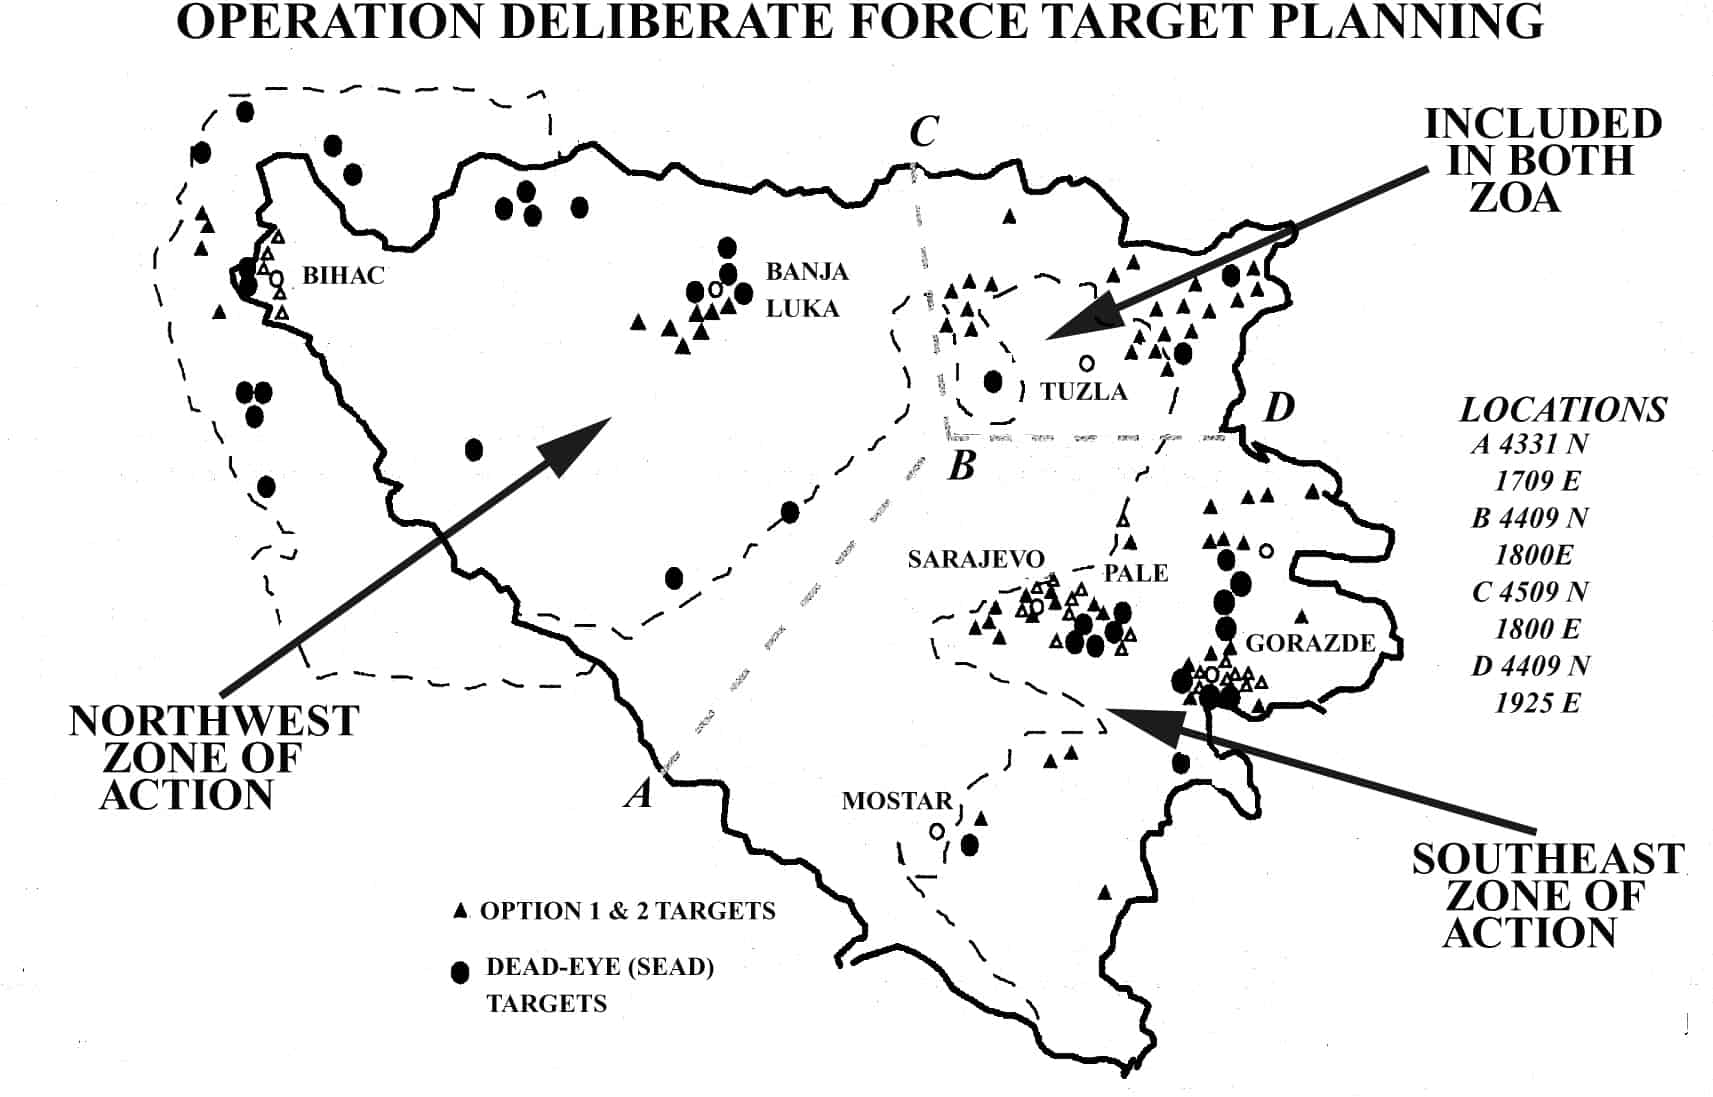 1995 operation deliberate force